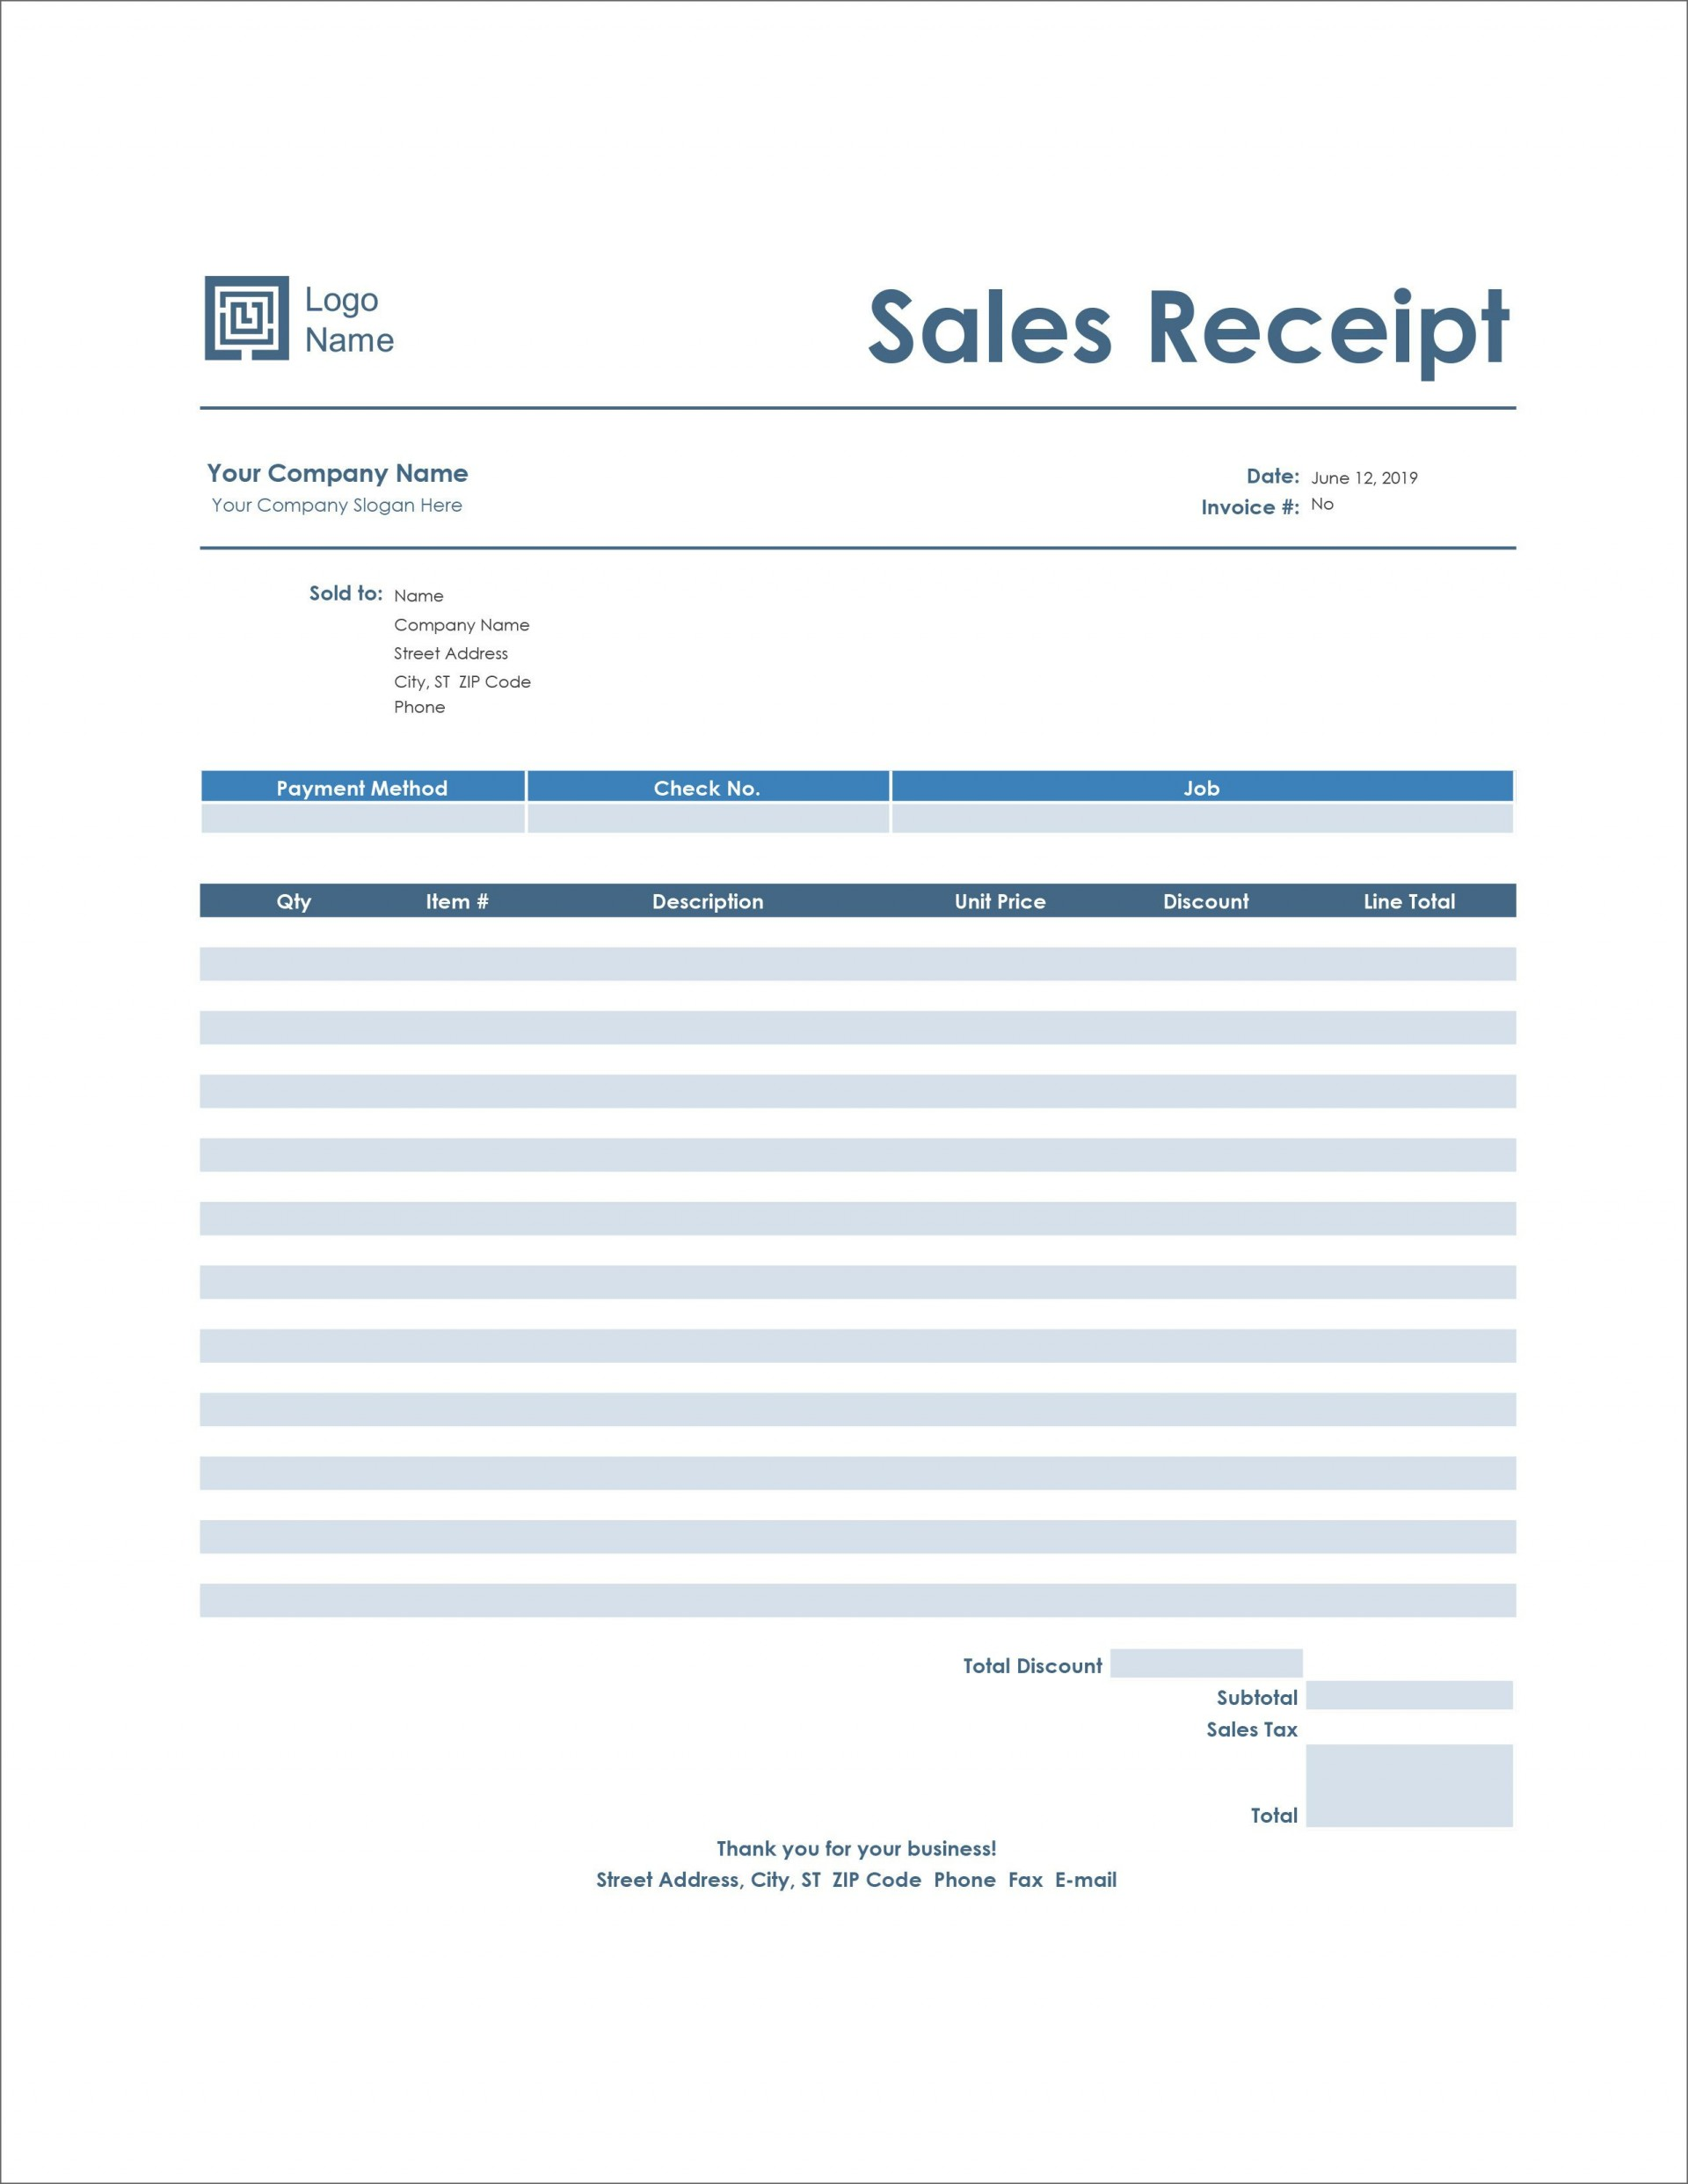 006 Staggering Receipt Template Microsoft Word Design  Invoice Free Money Blank1920